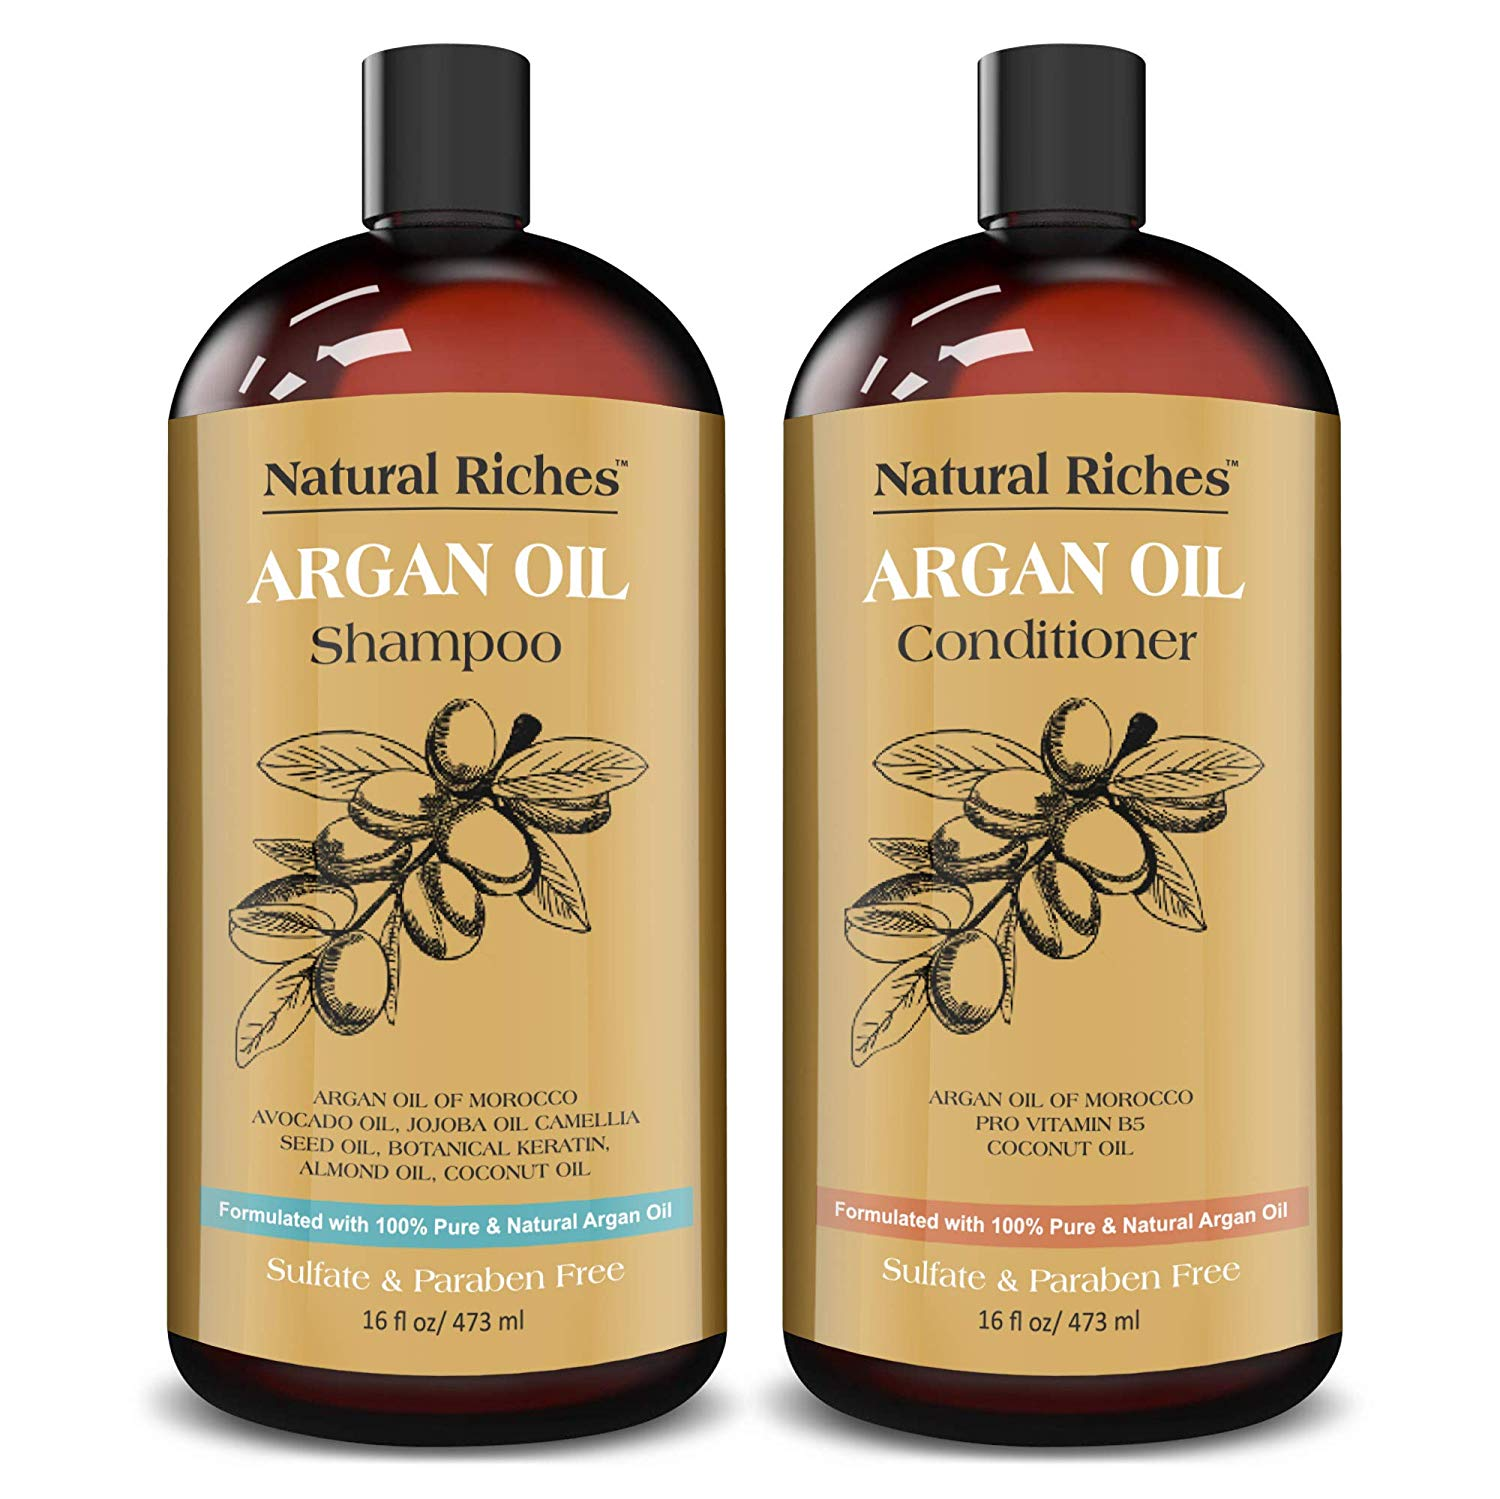 Natural Riches Moroccan Argan Oil Organic Shampoo & Conditioner Set